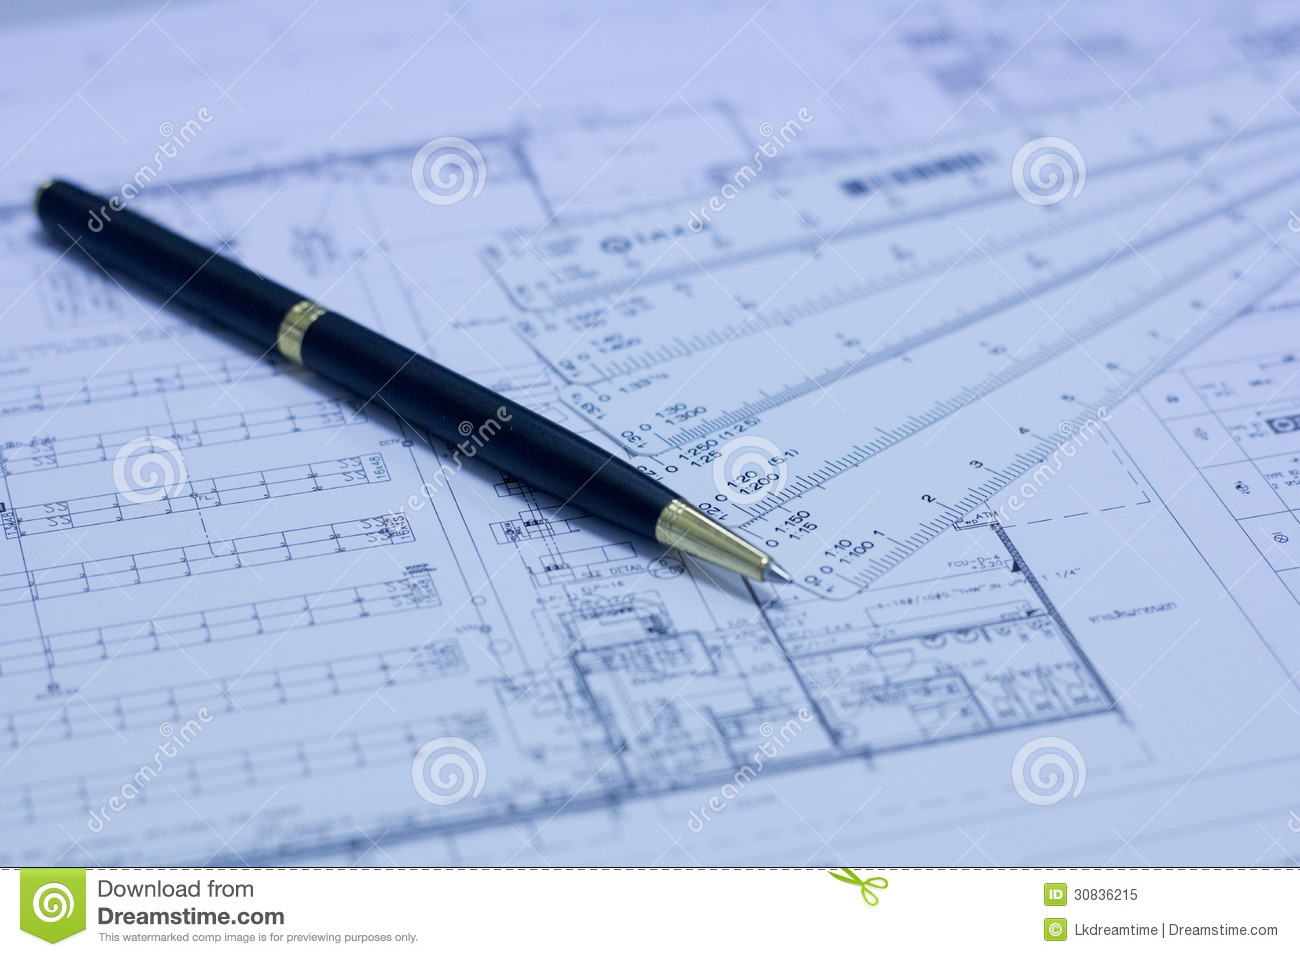 Pen Scale Ruler And Blueprint Stock Image